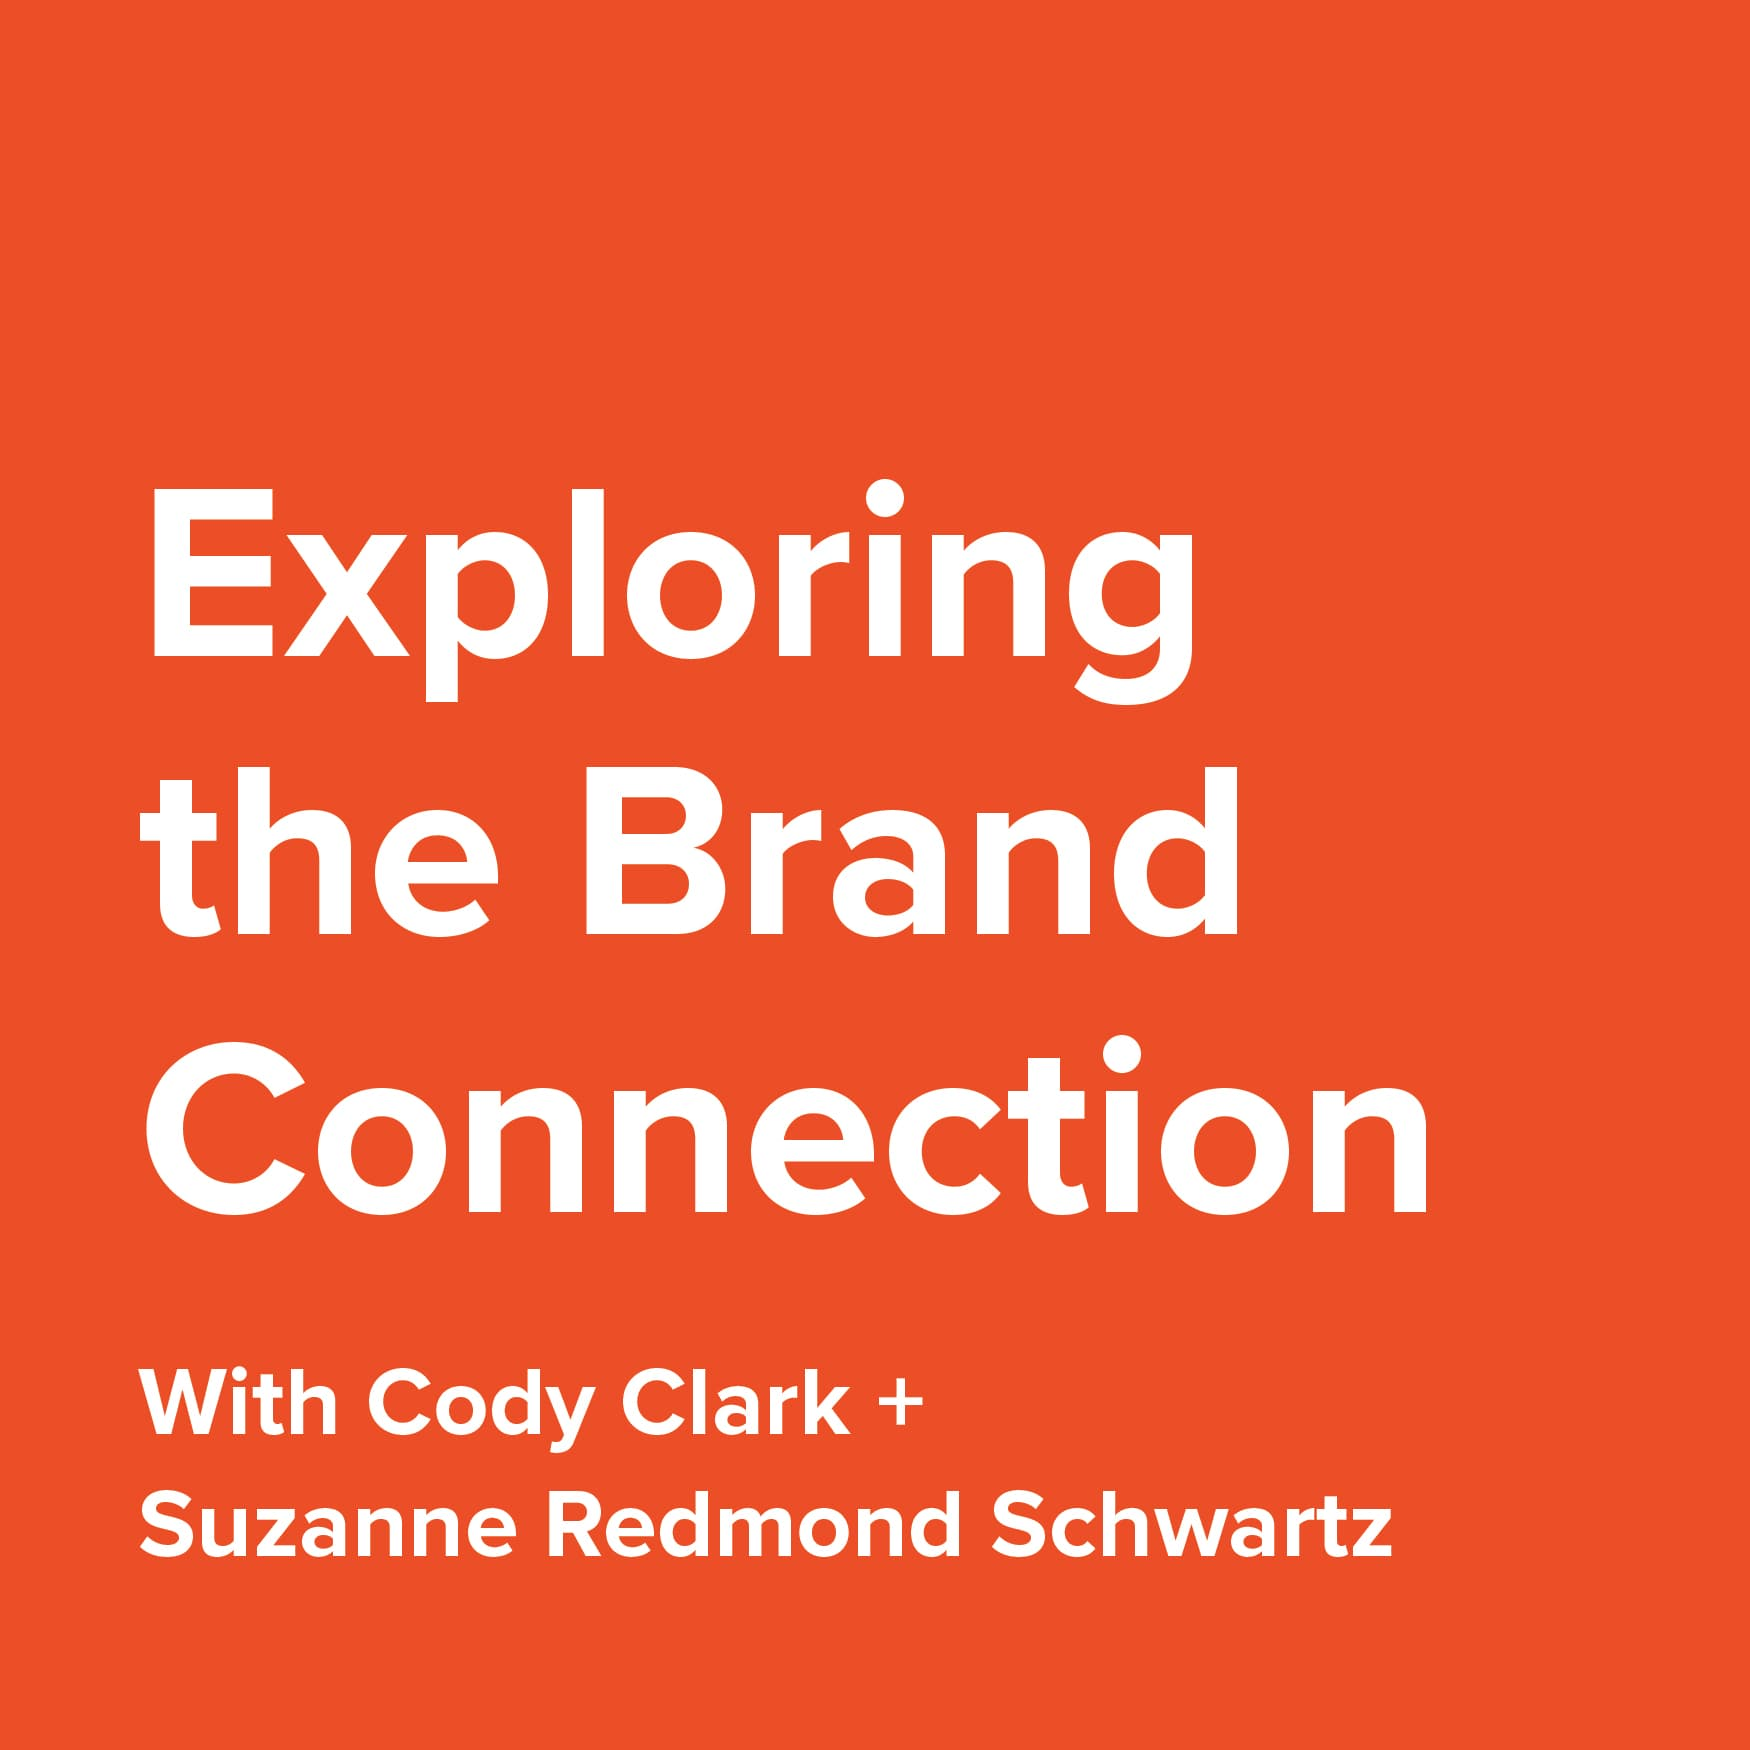 Exploring the Brand Connection with Cody Clark and Suzanne Redmond Schwartz